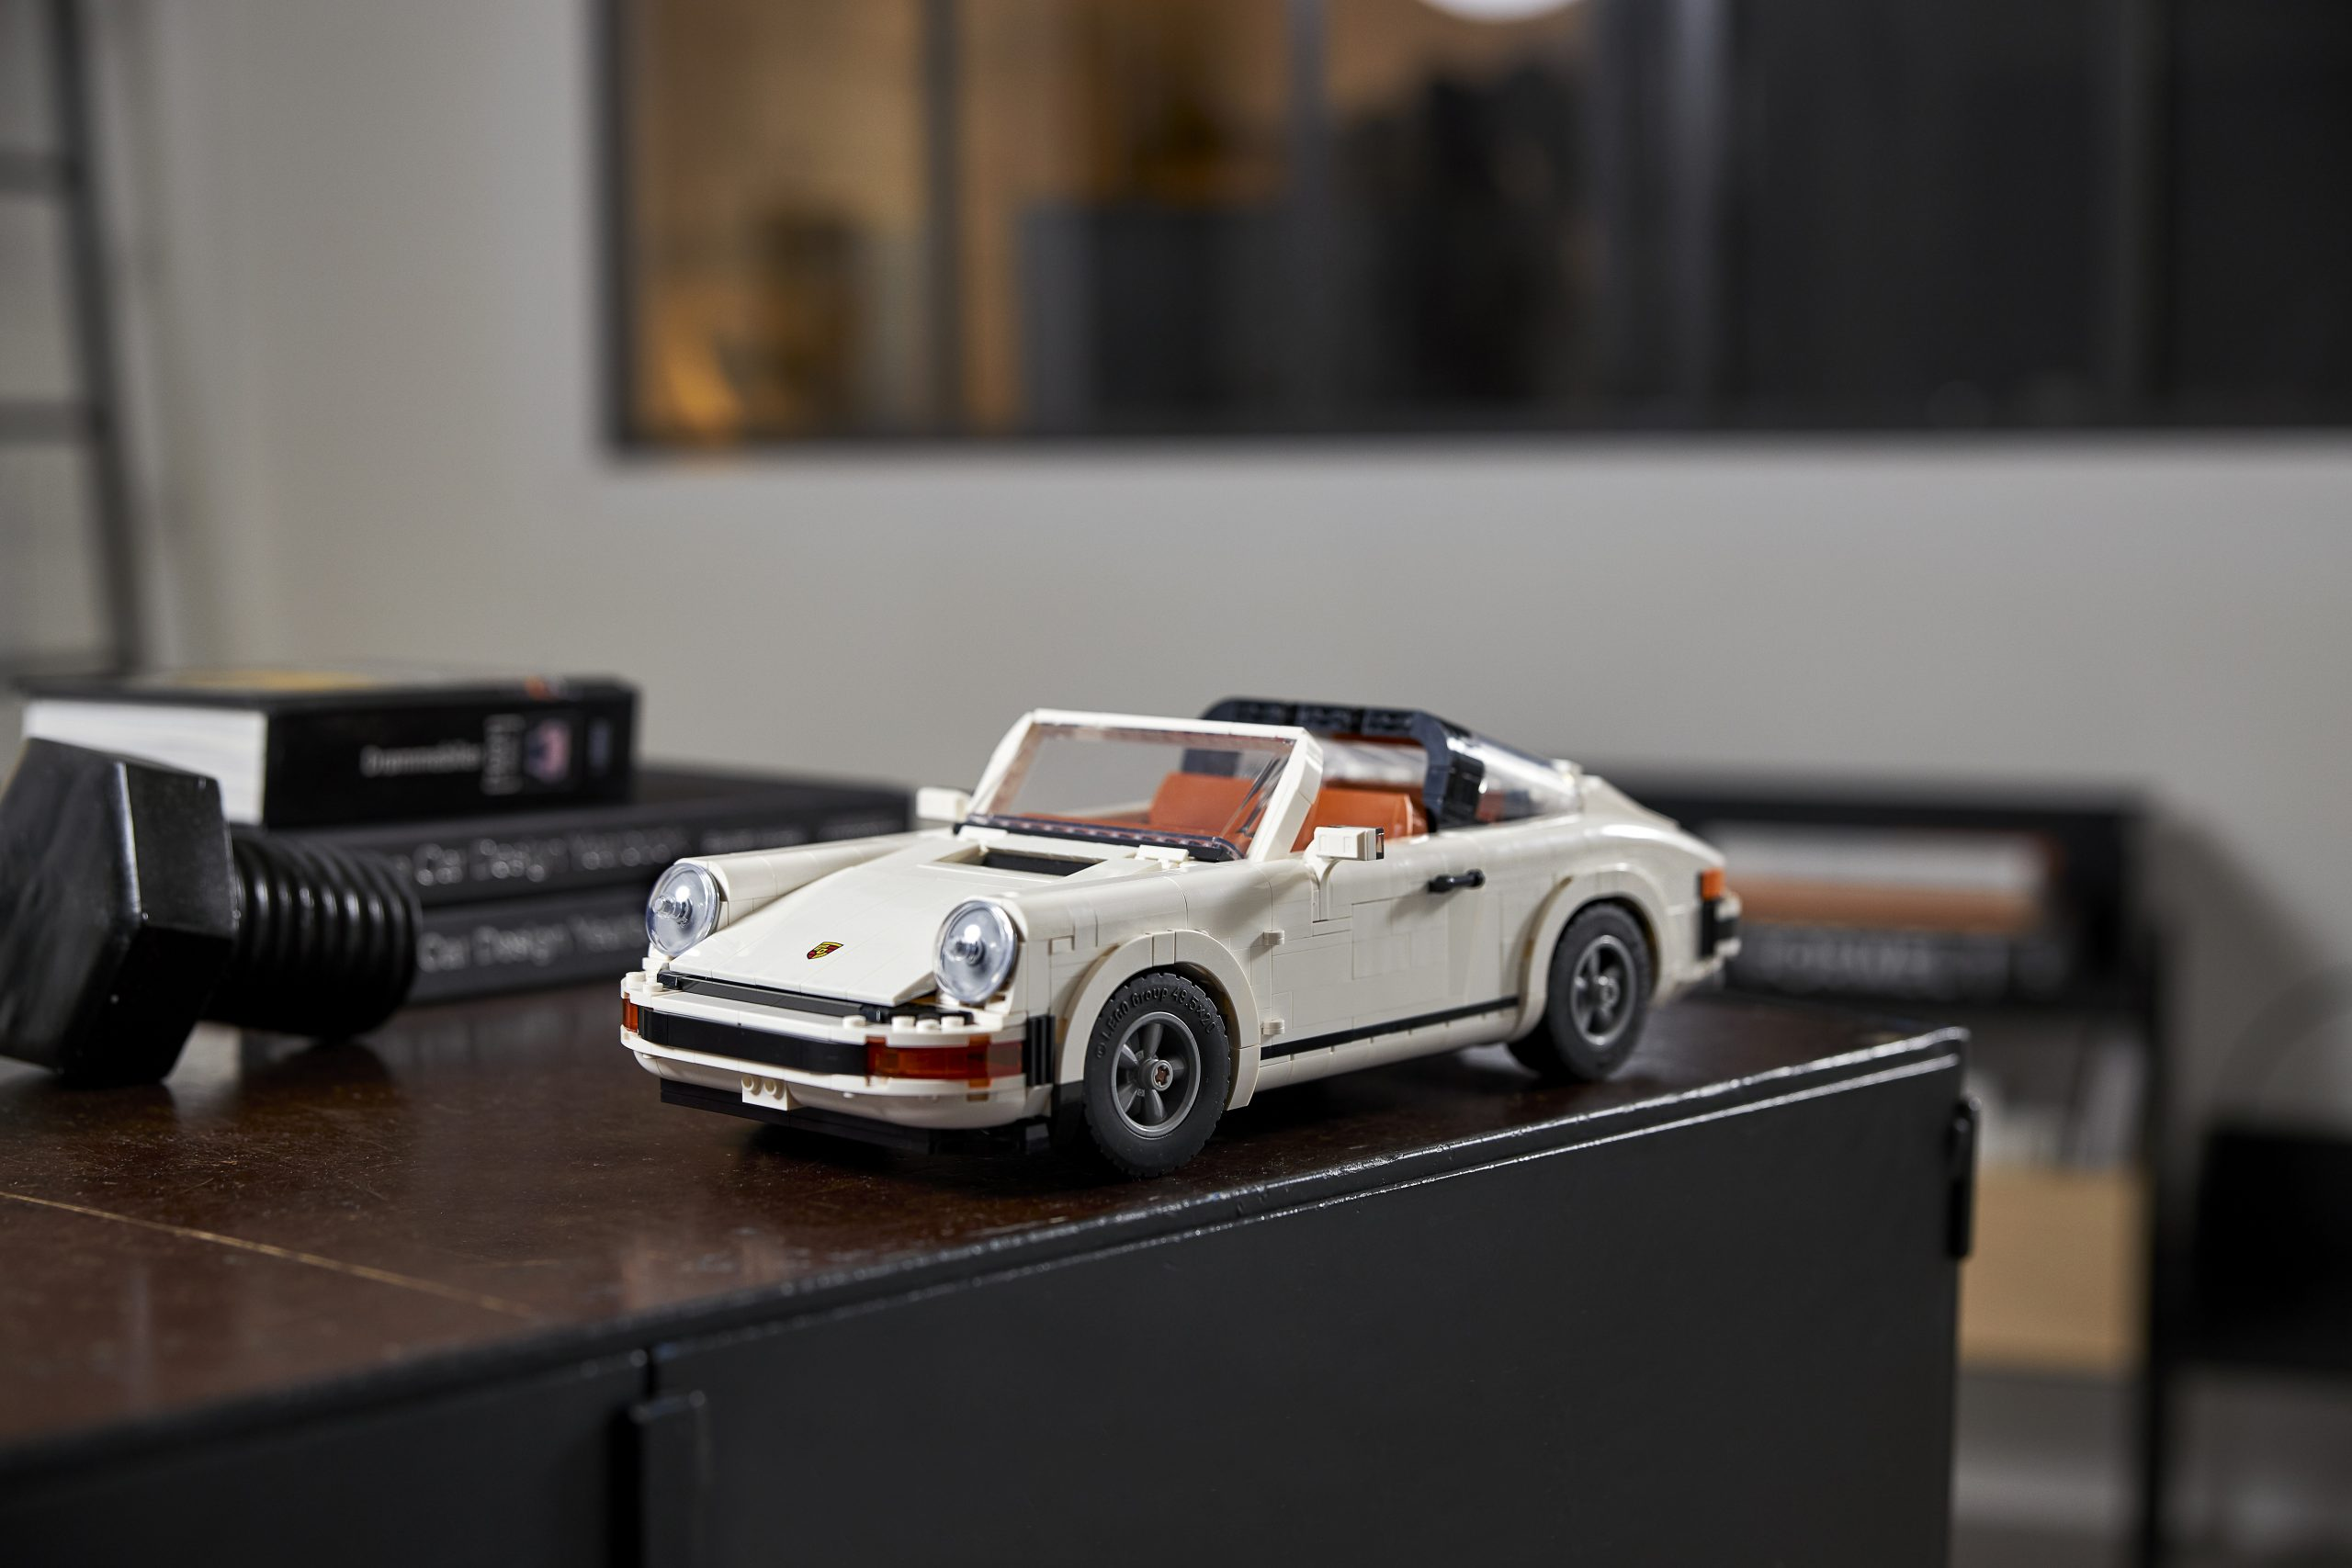 Lego's New Porsche 911 Set Gives You Targa and Turbo in One Box